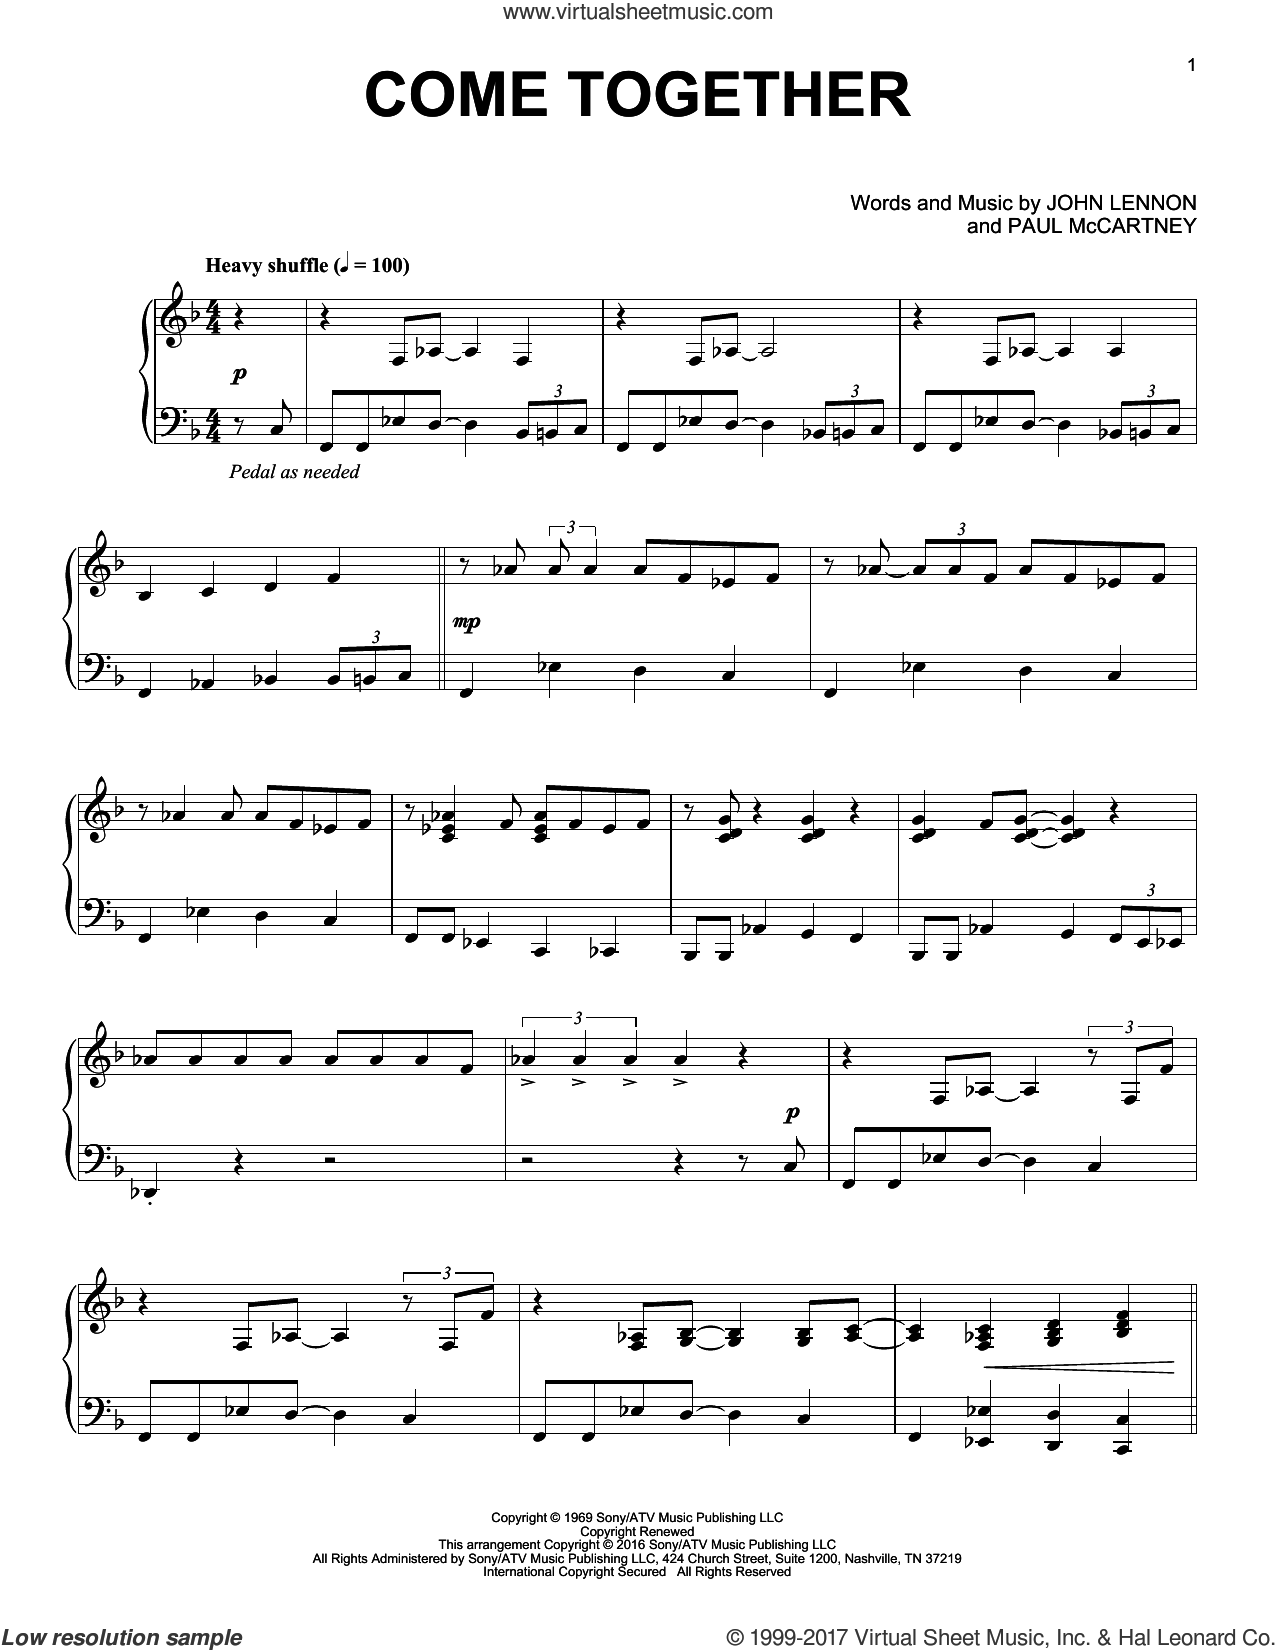 Come Together [Jazz version] sheet music for piano solo by The Beatles, John Lennon and Paul McCartney, intermediate skill level